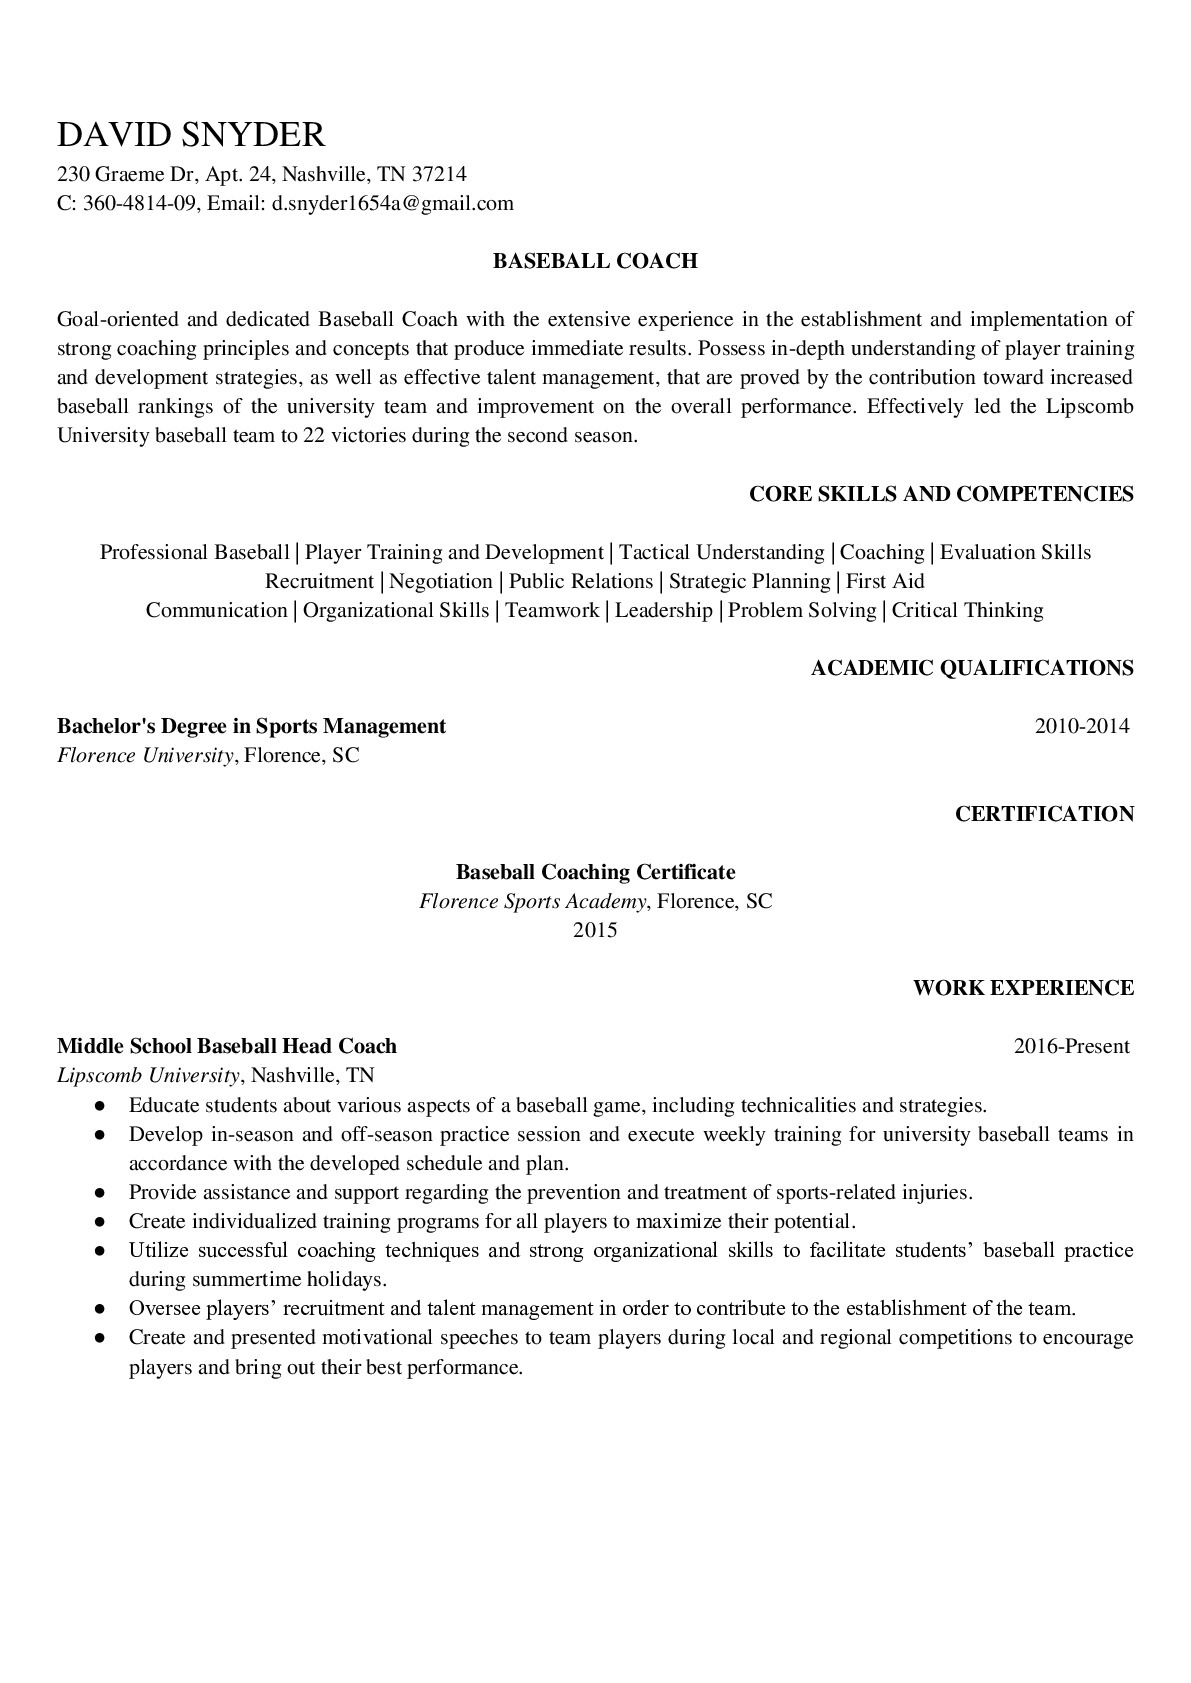 Resume Example for Baseball Coach